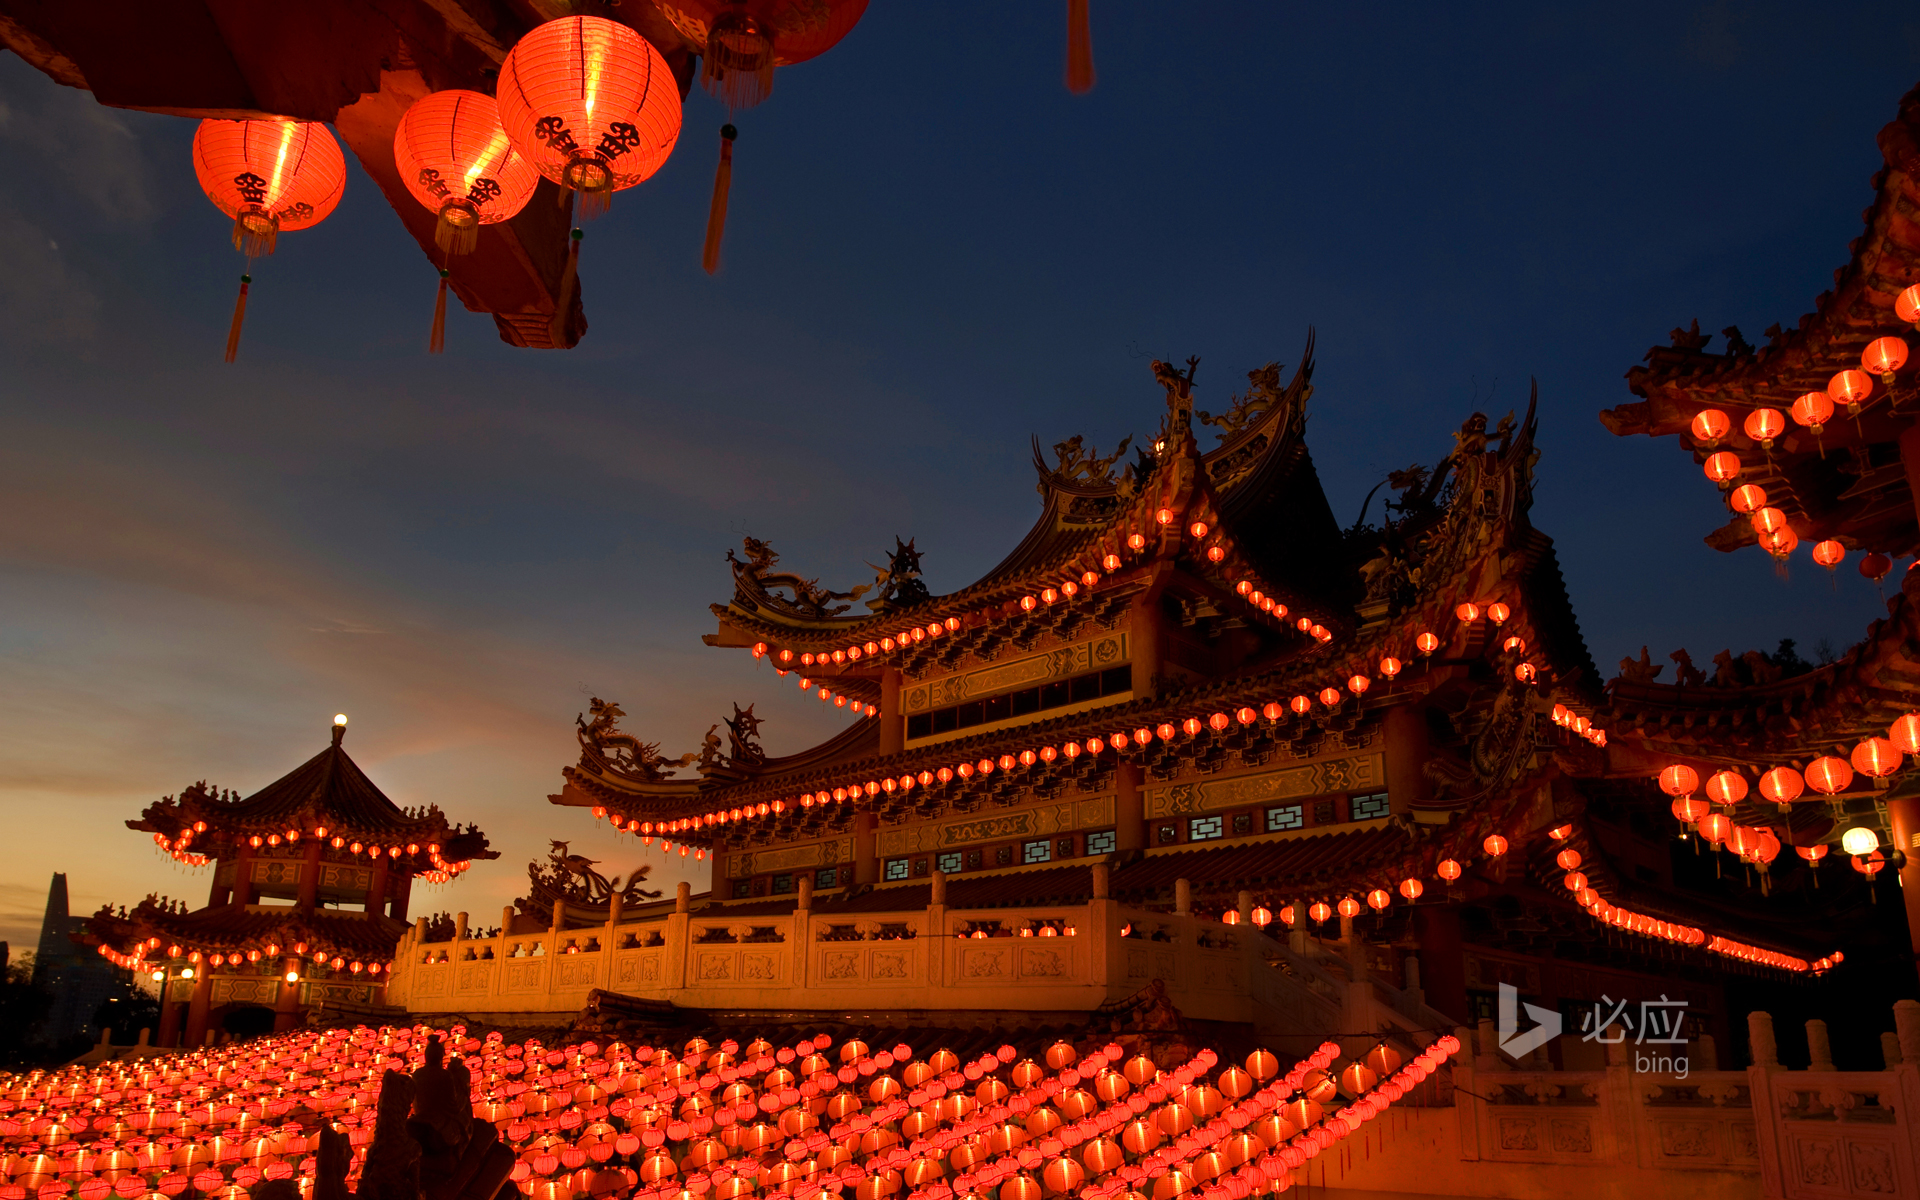 Chinese temple with red lanterns